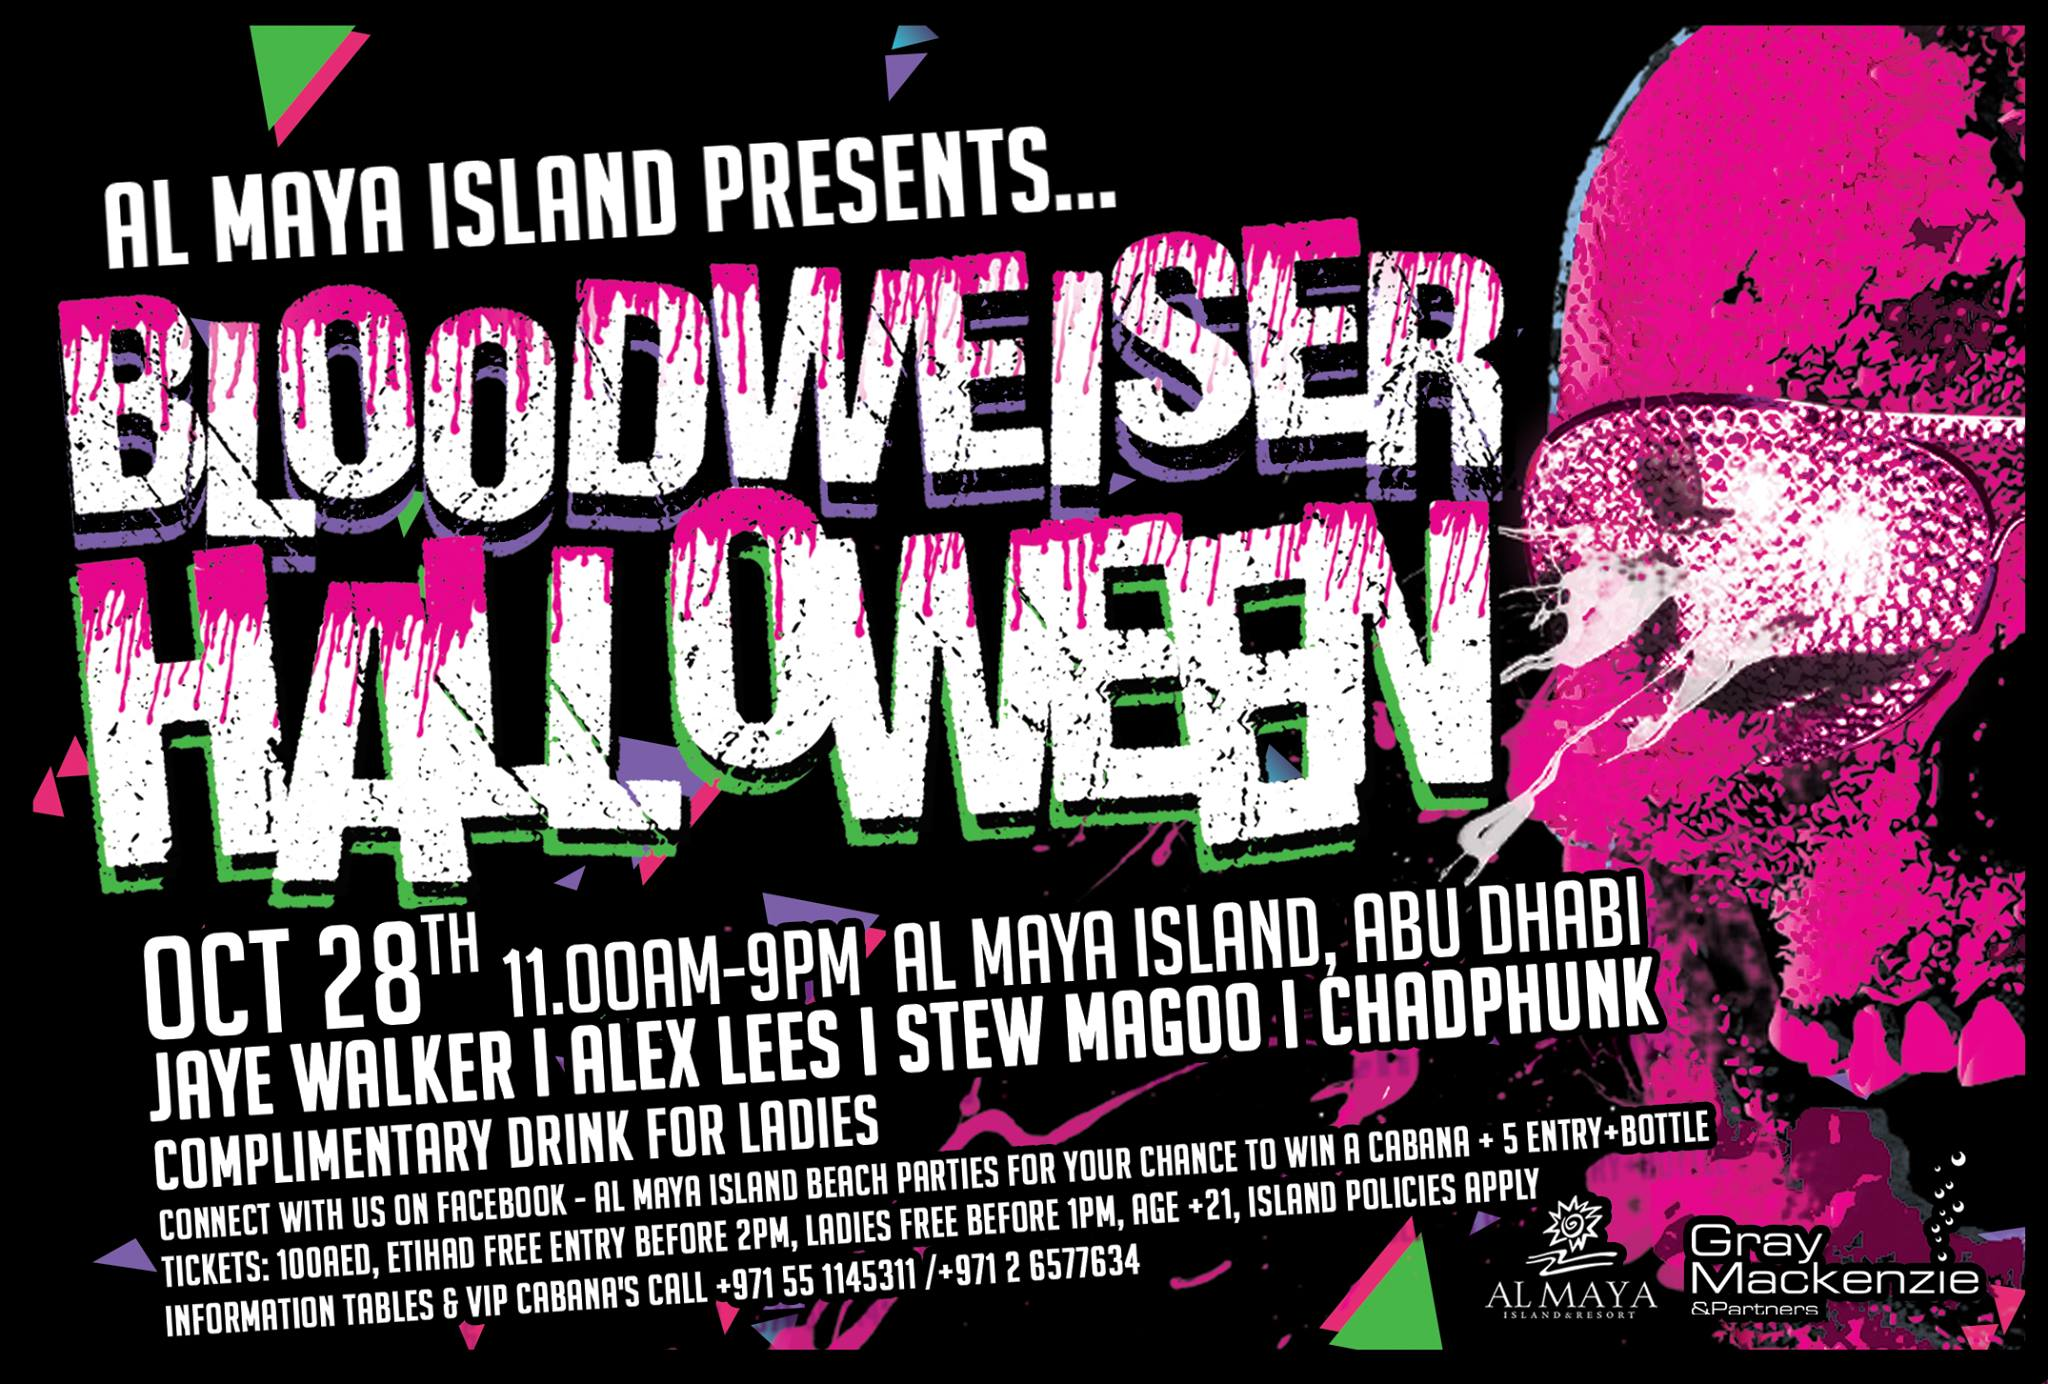 Al Maya Island presents the Halloween Maya Bloodweiser